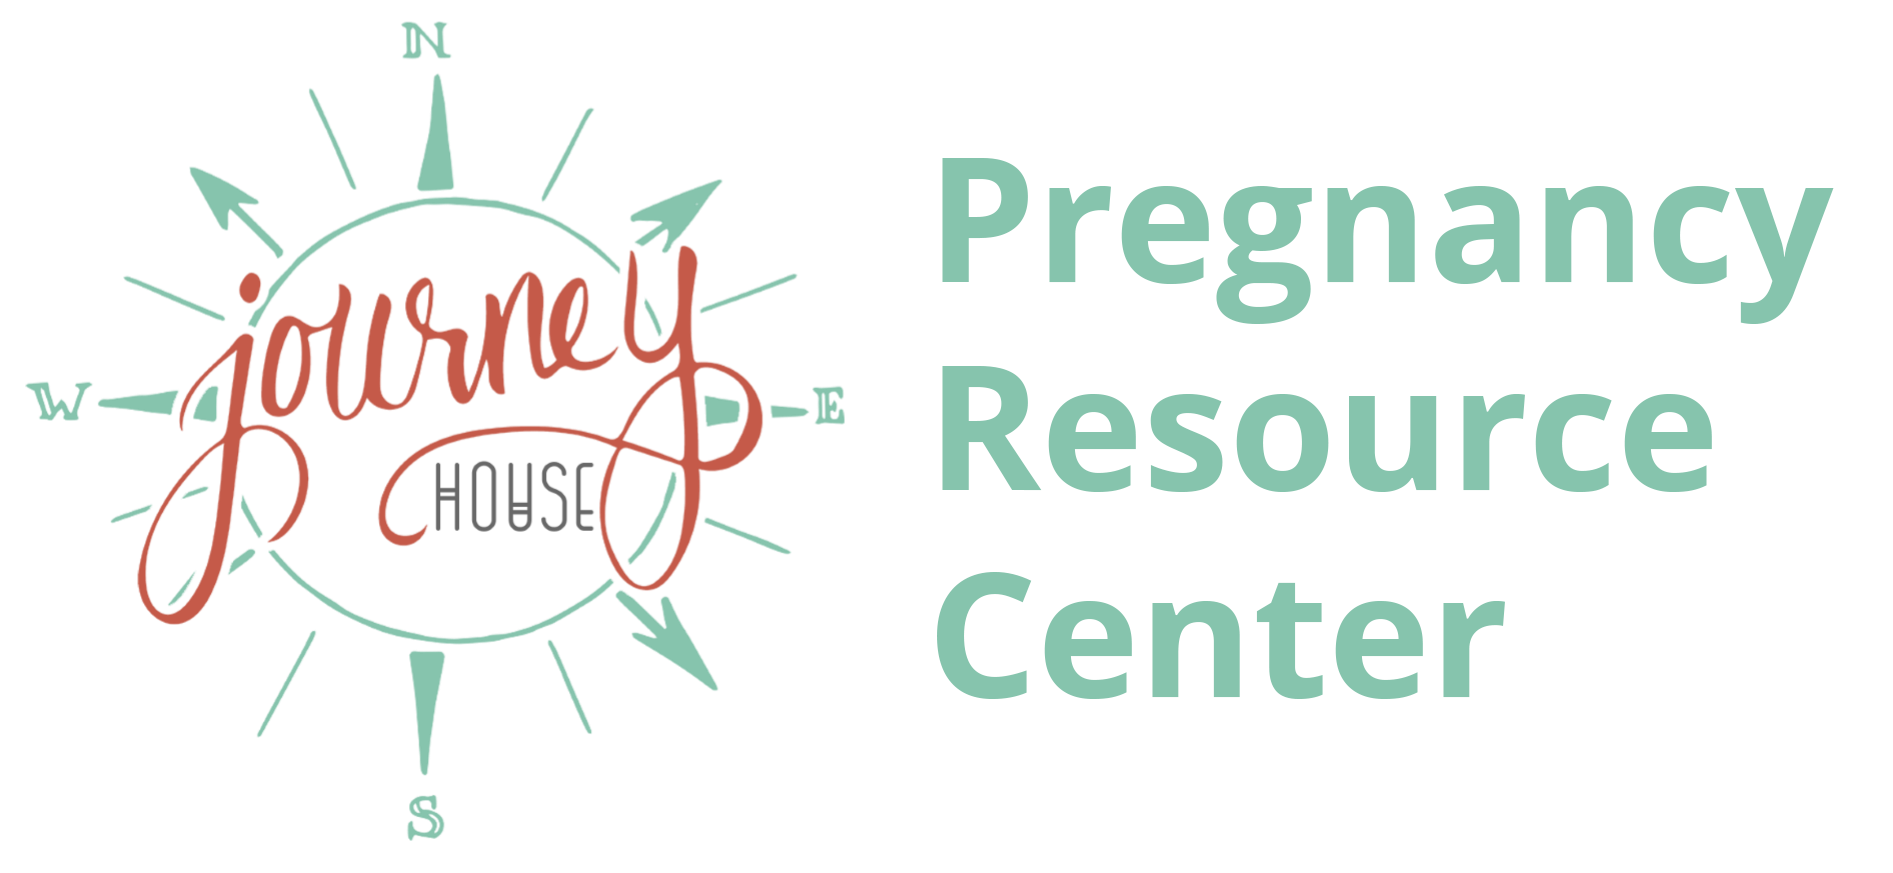 Journey House Pregnancy Resource Center Enid, OK